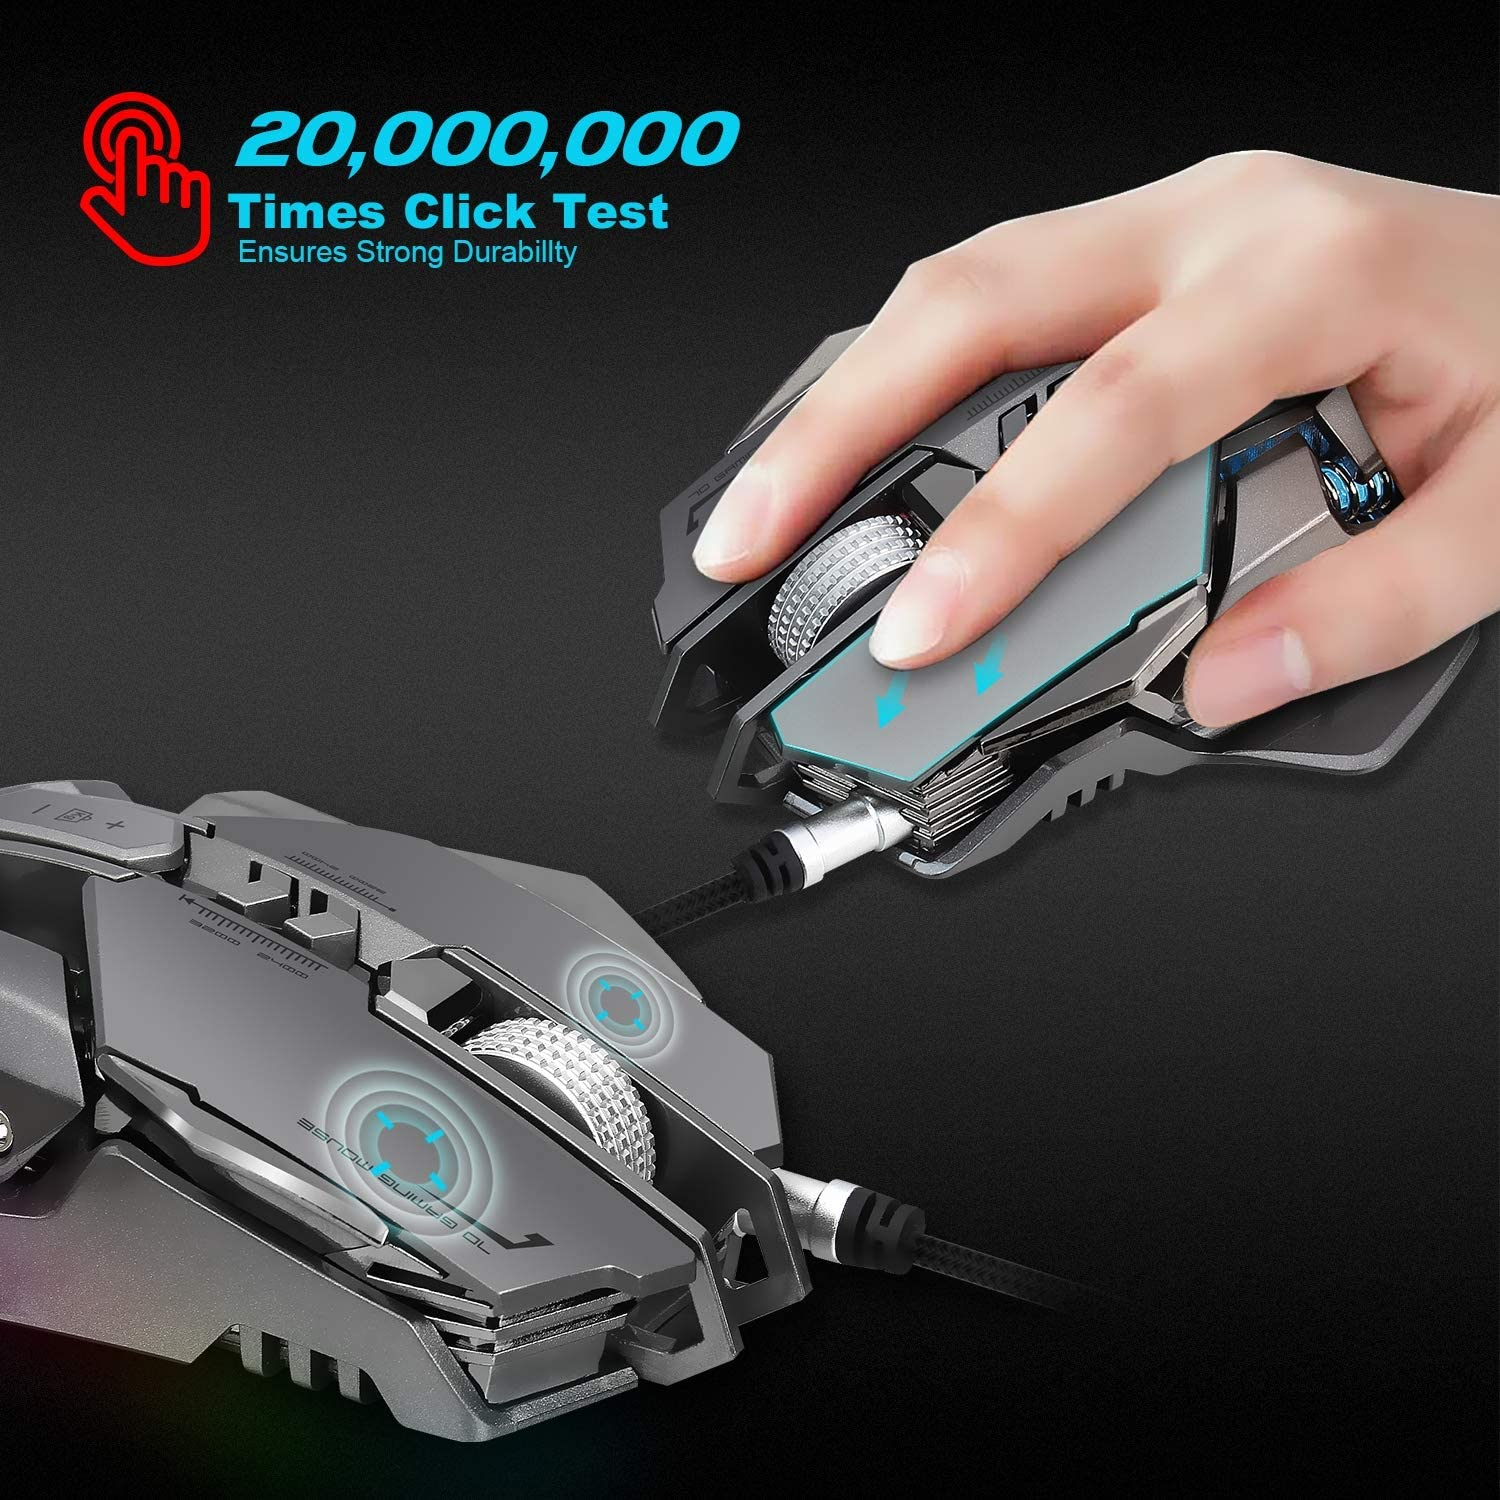 LOLOP Mechanical Mouse A3050 Chip 3200Dpi 7-Key Programming Definition Backlit Gaming Mouse